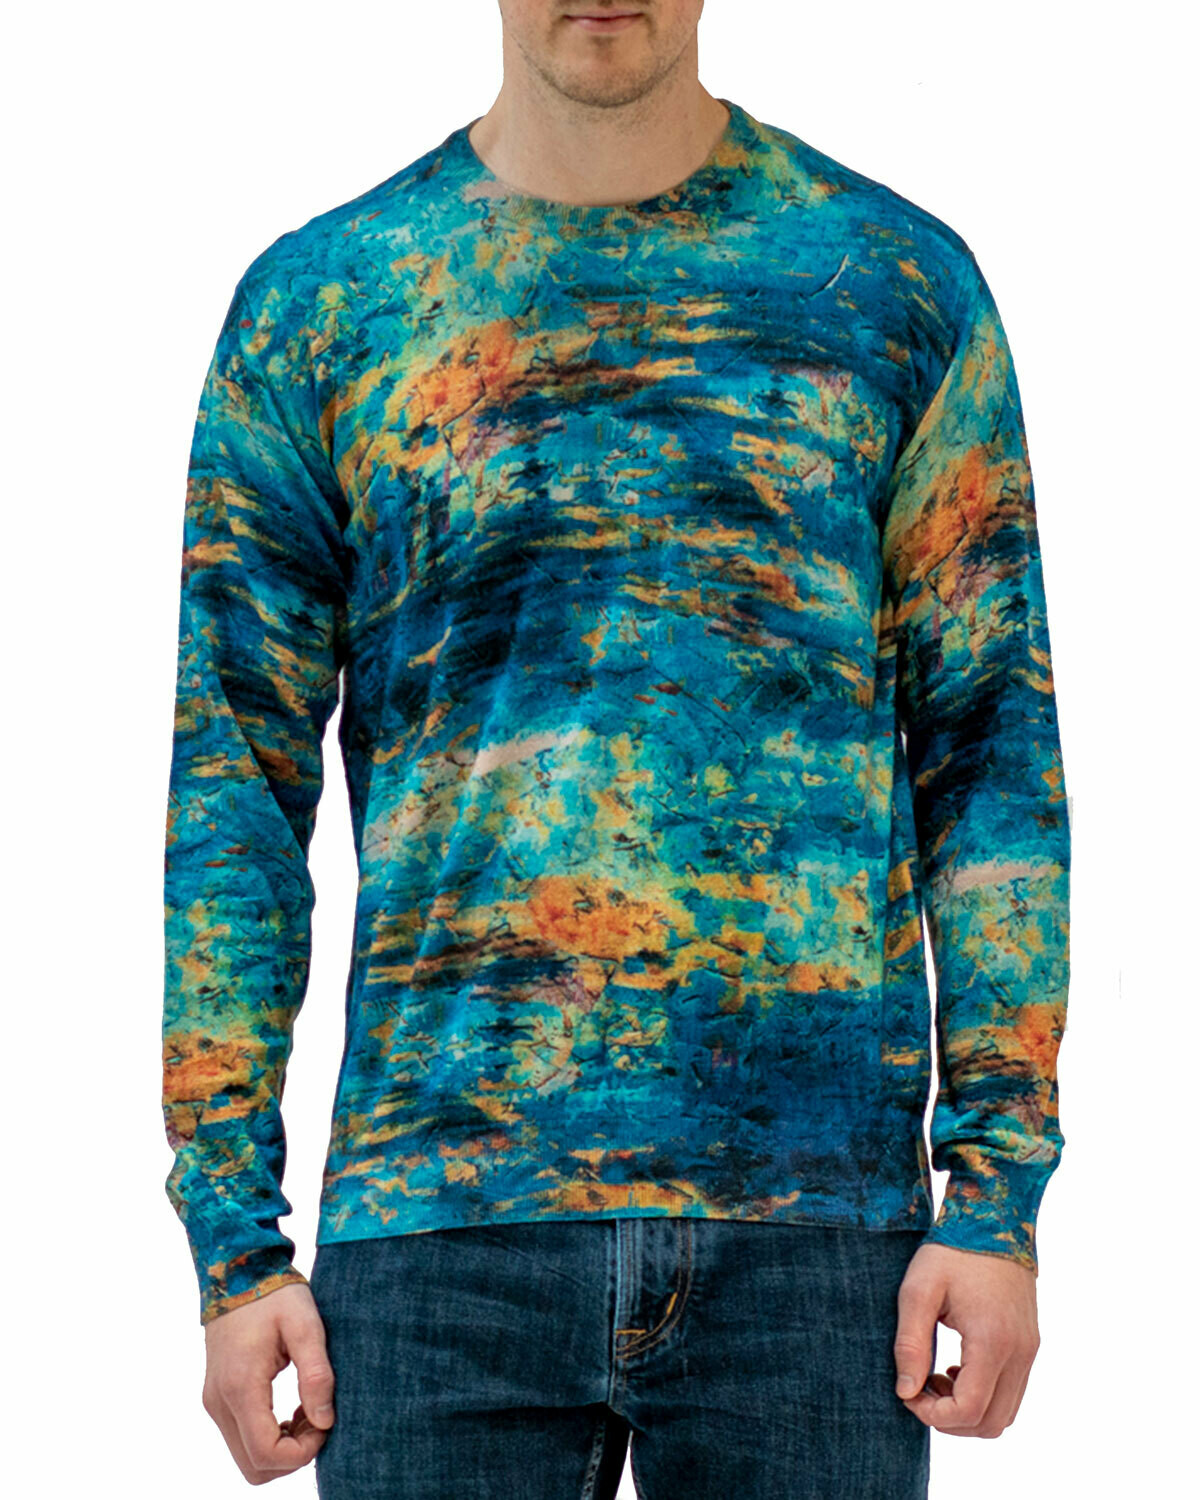 Robert Graham ART AMOUR SWEATER